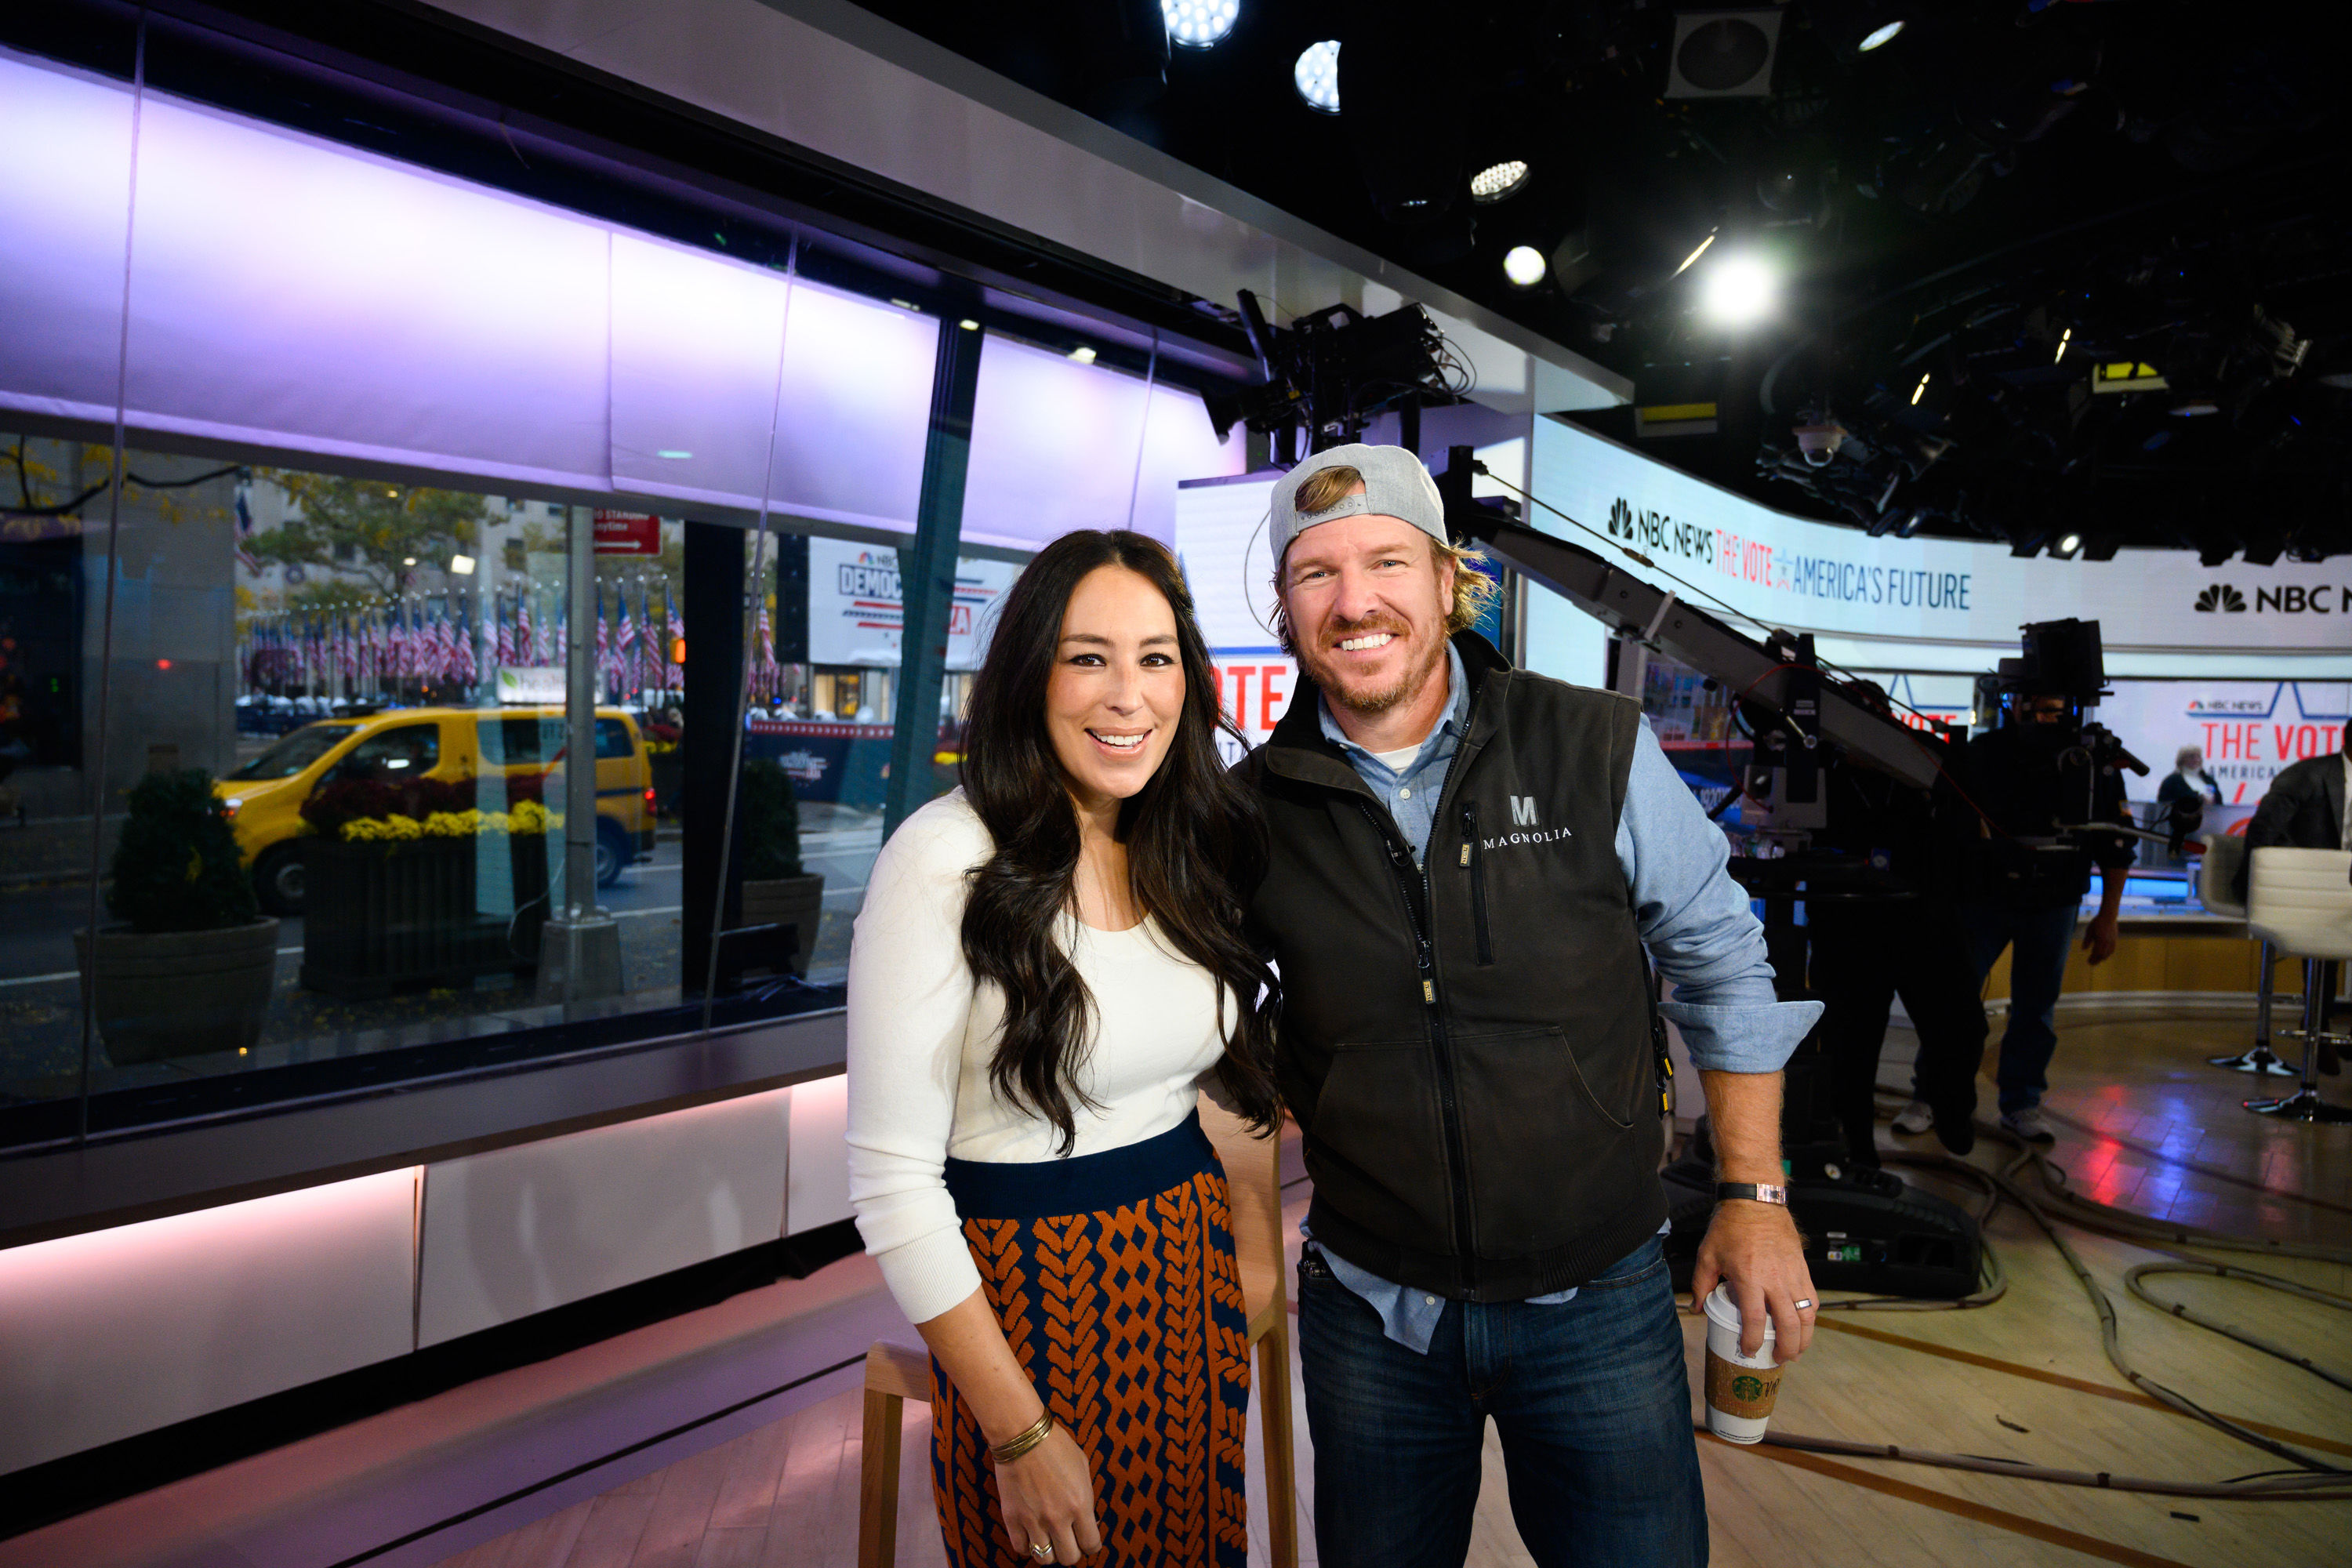 Chip and Joanna Gaines Are Already Fielding Job Applications for Their New Television Network